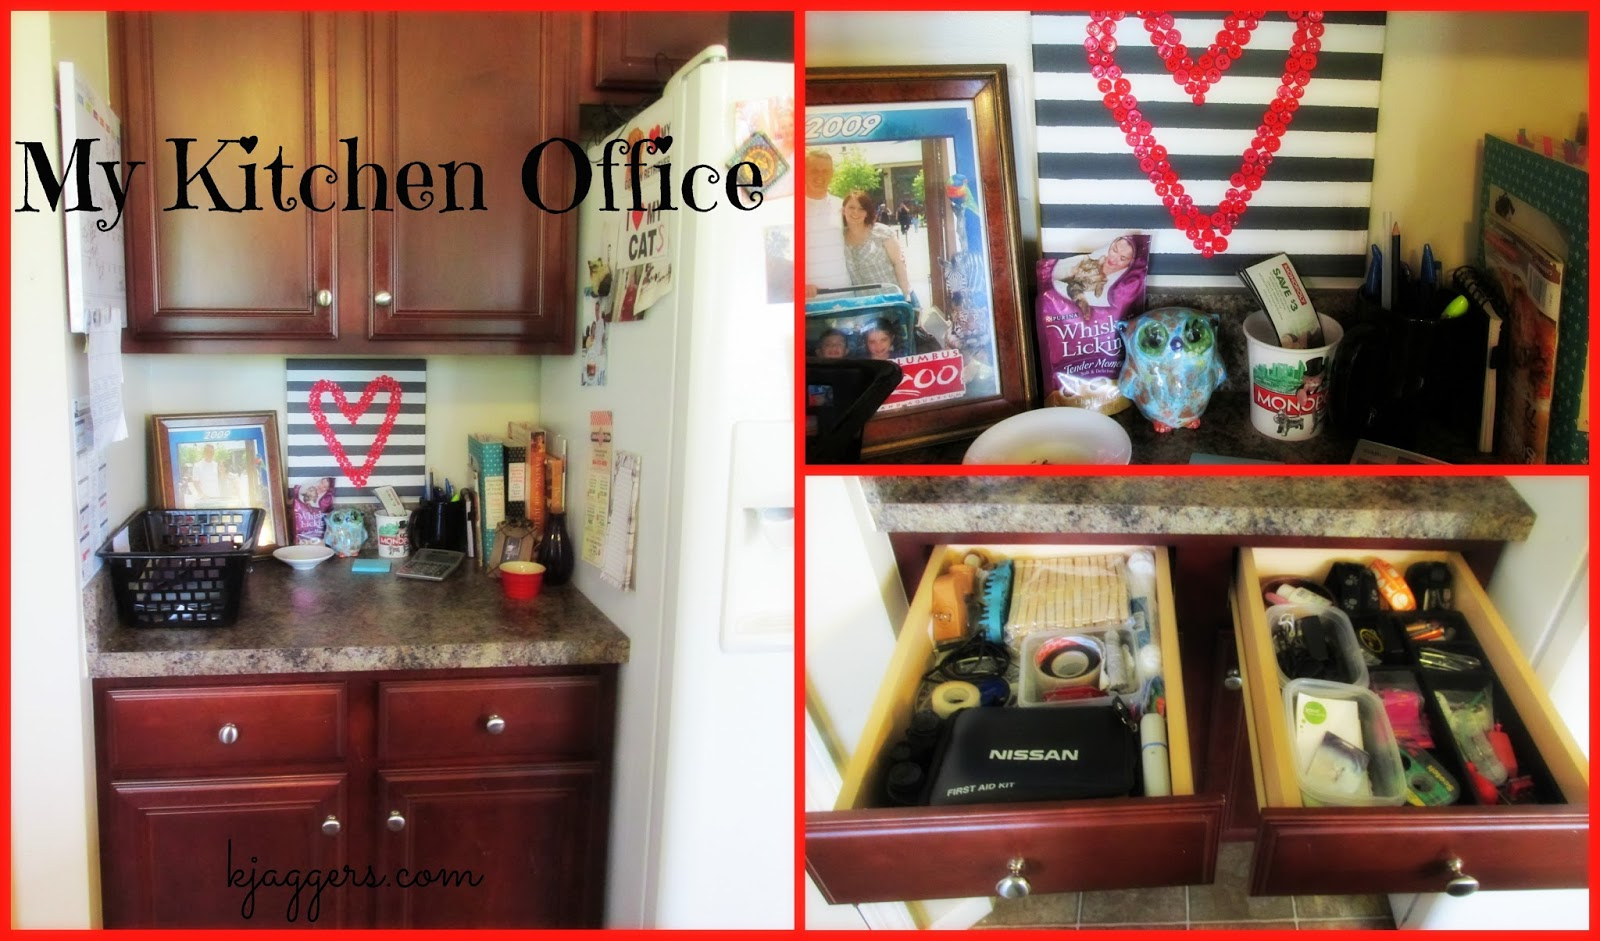 Kitchen Office Organization Home Organization My Kitchen Office Video Pictures And Info